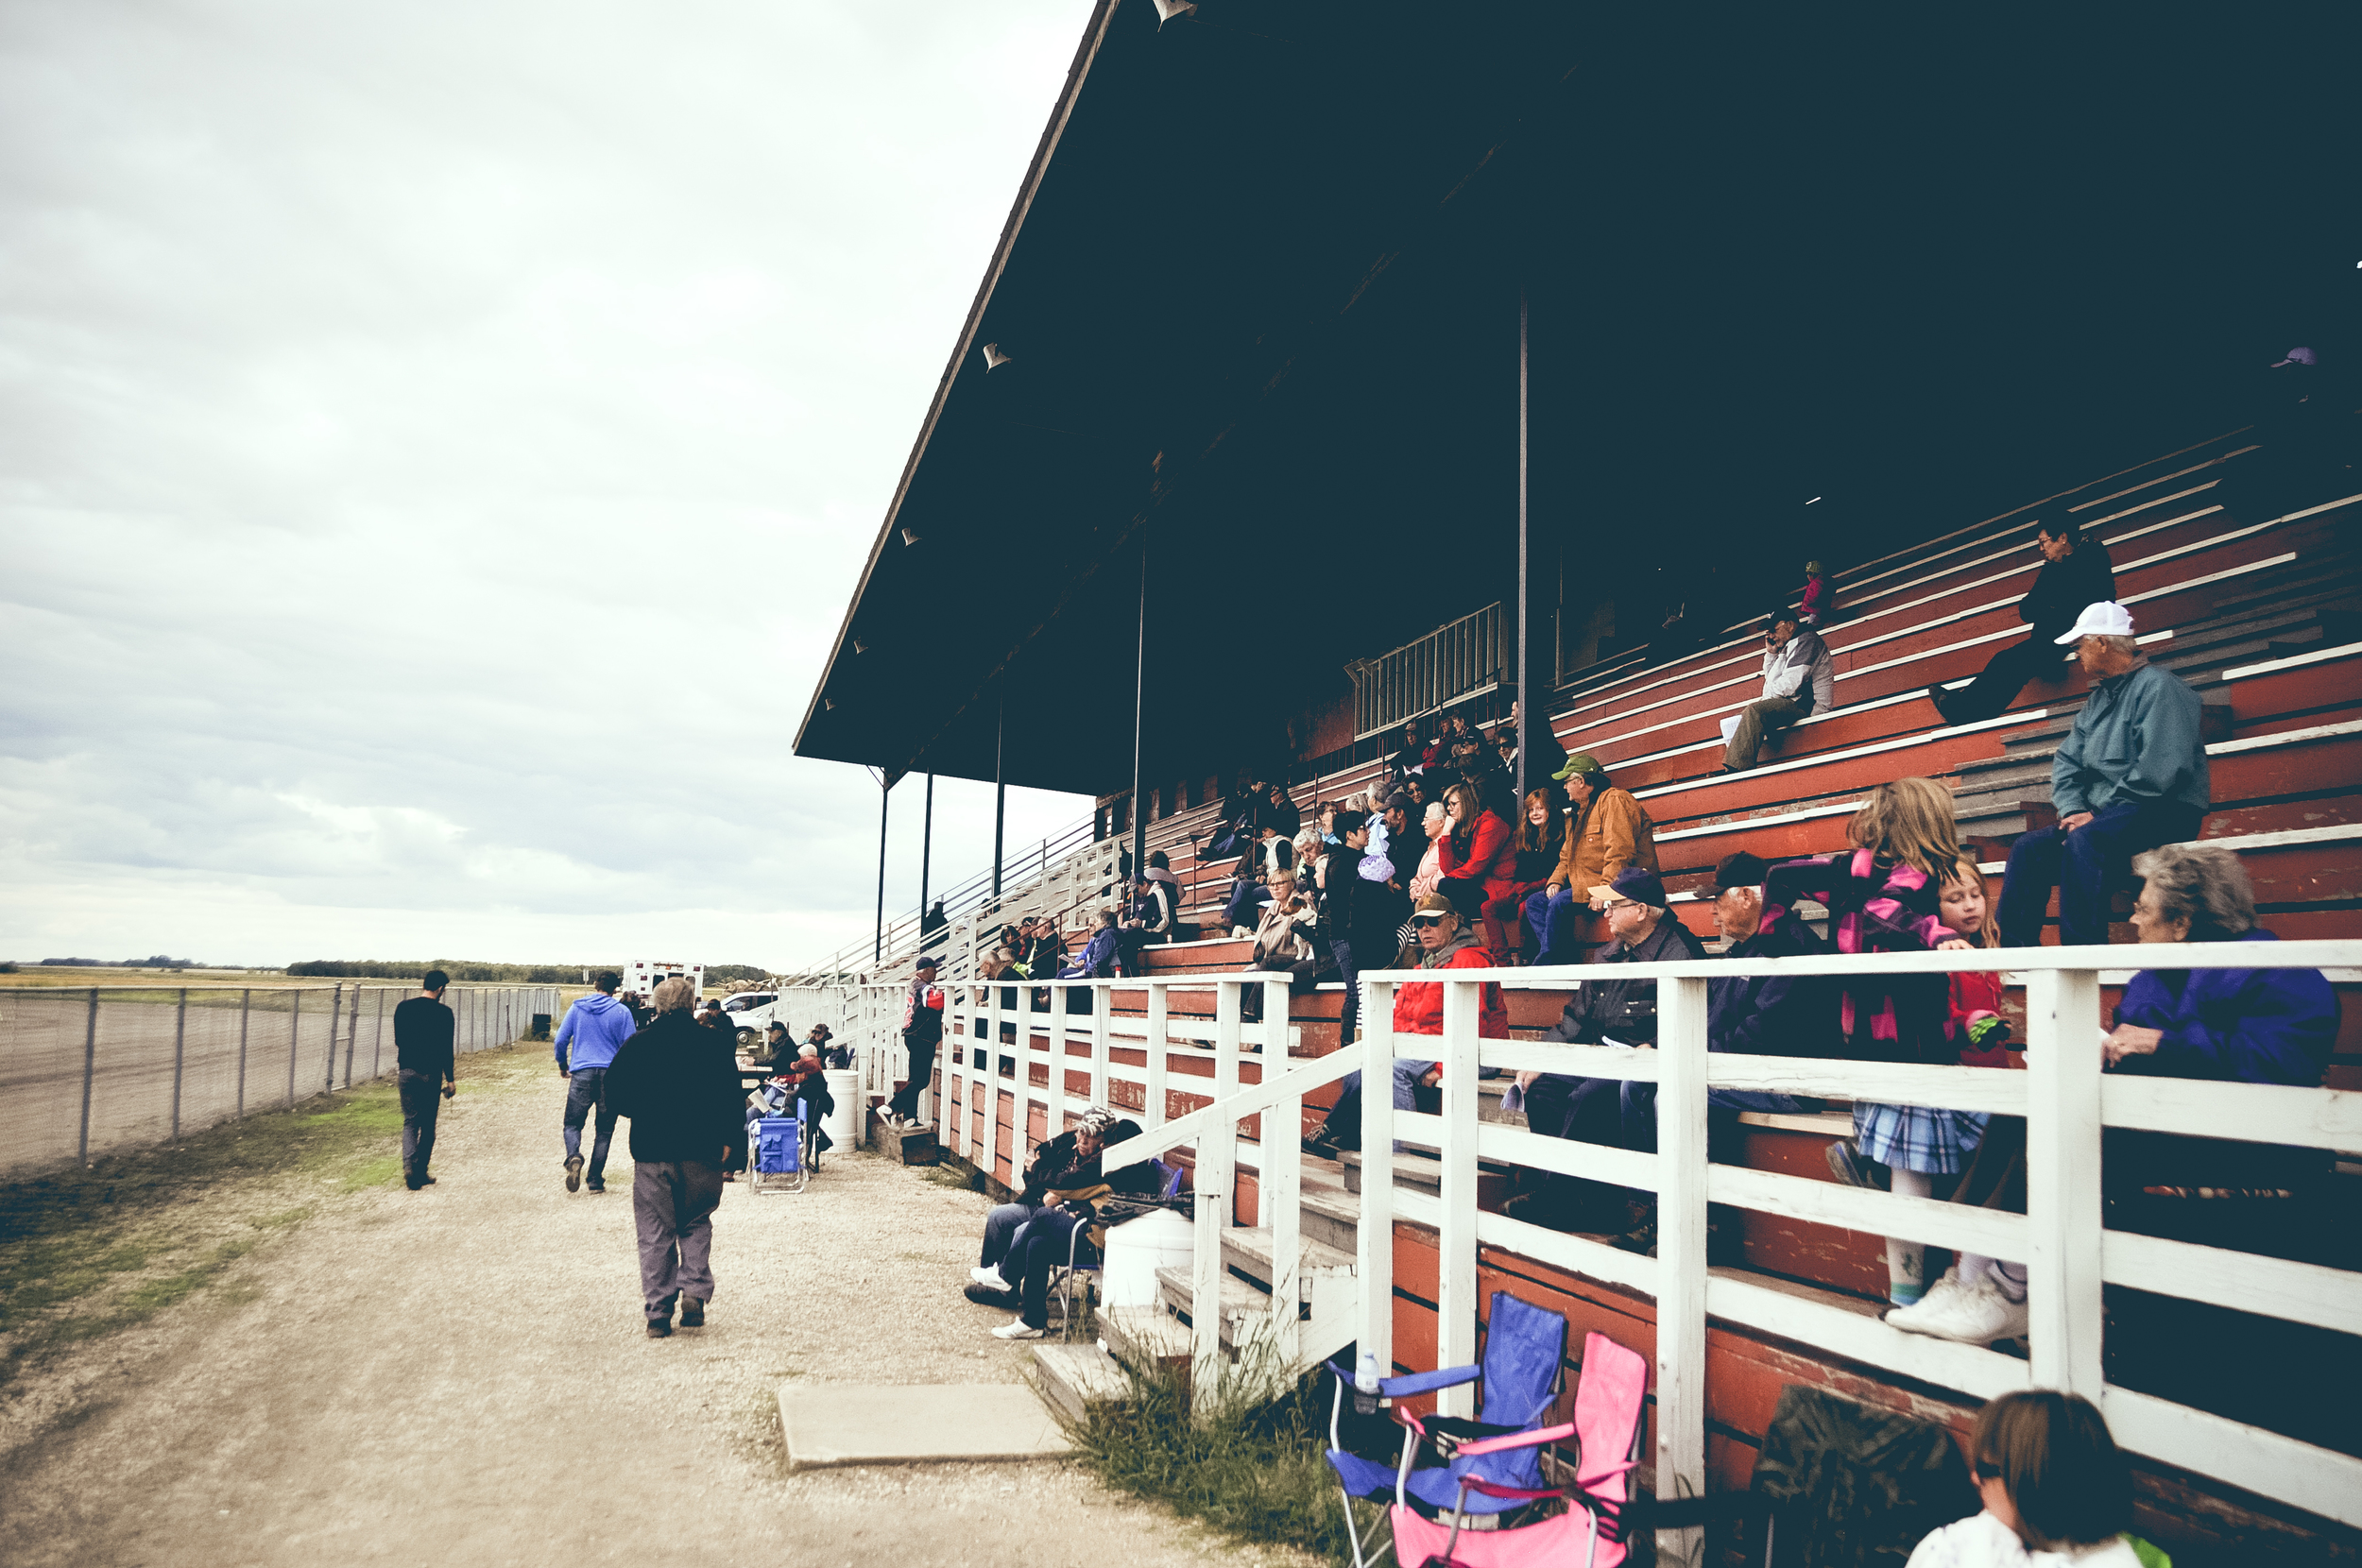 The stadium and locals out to watch the race